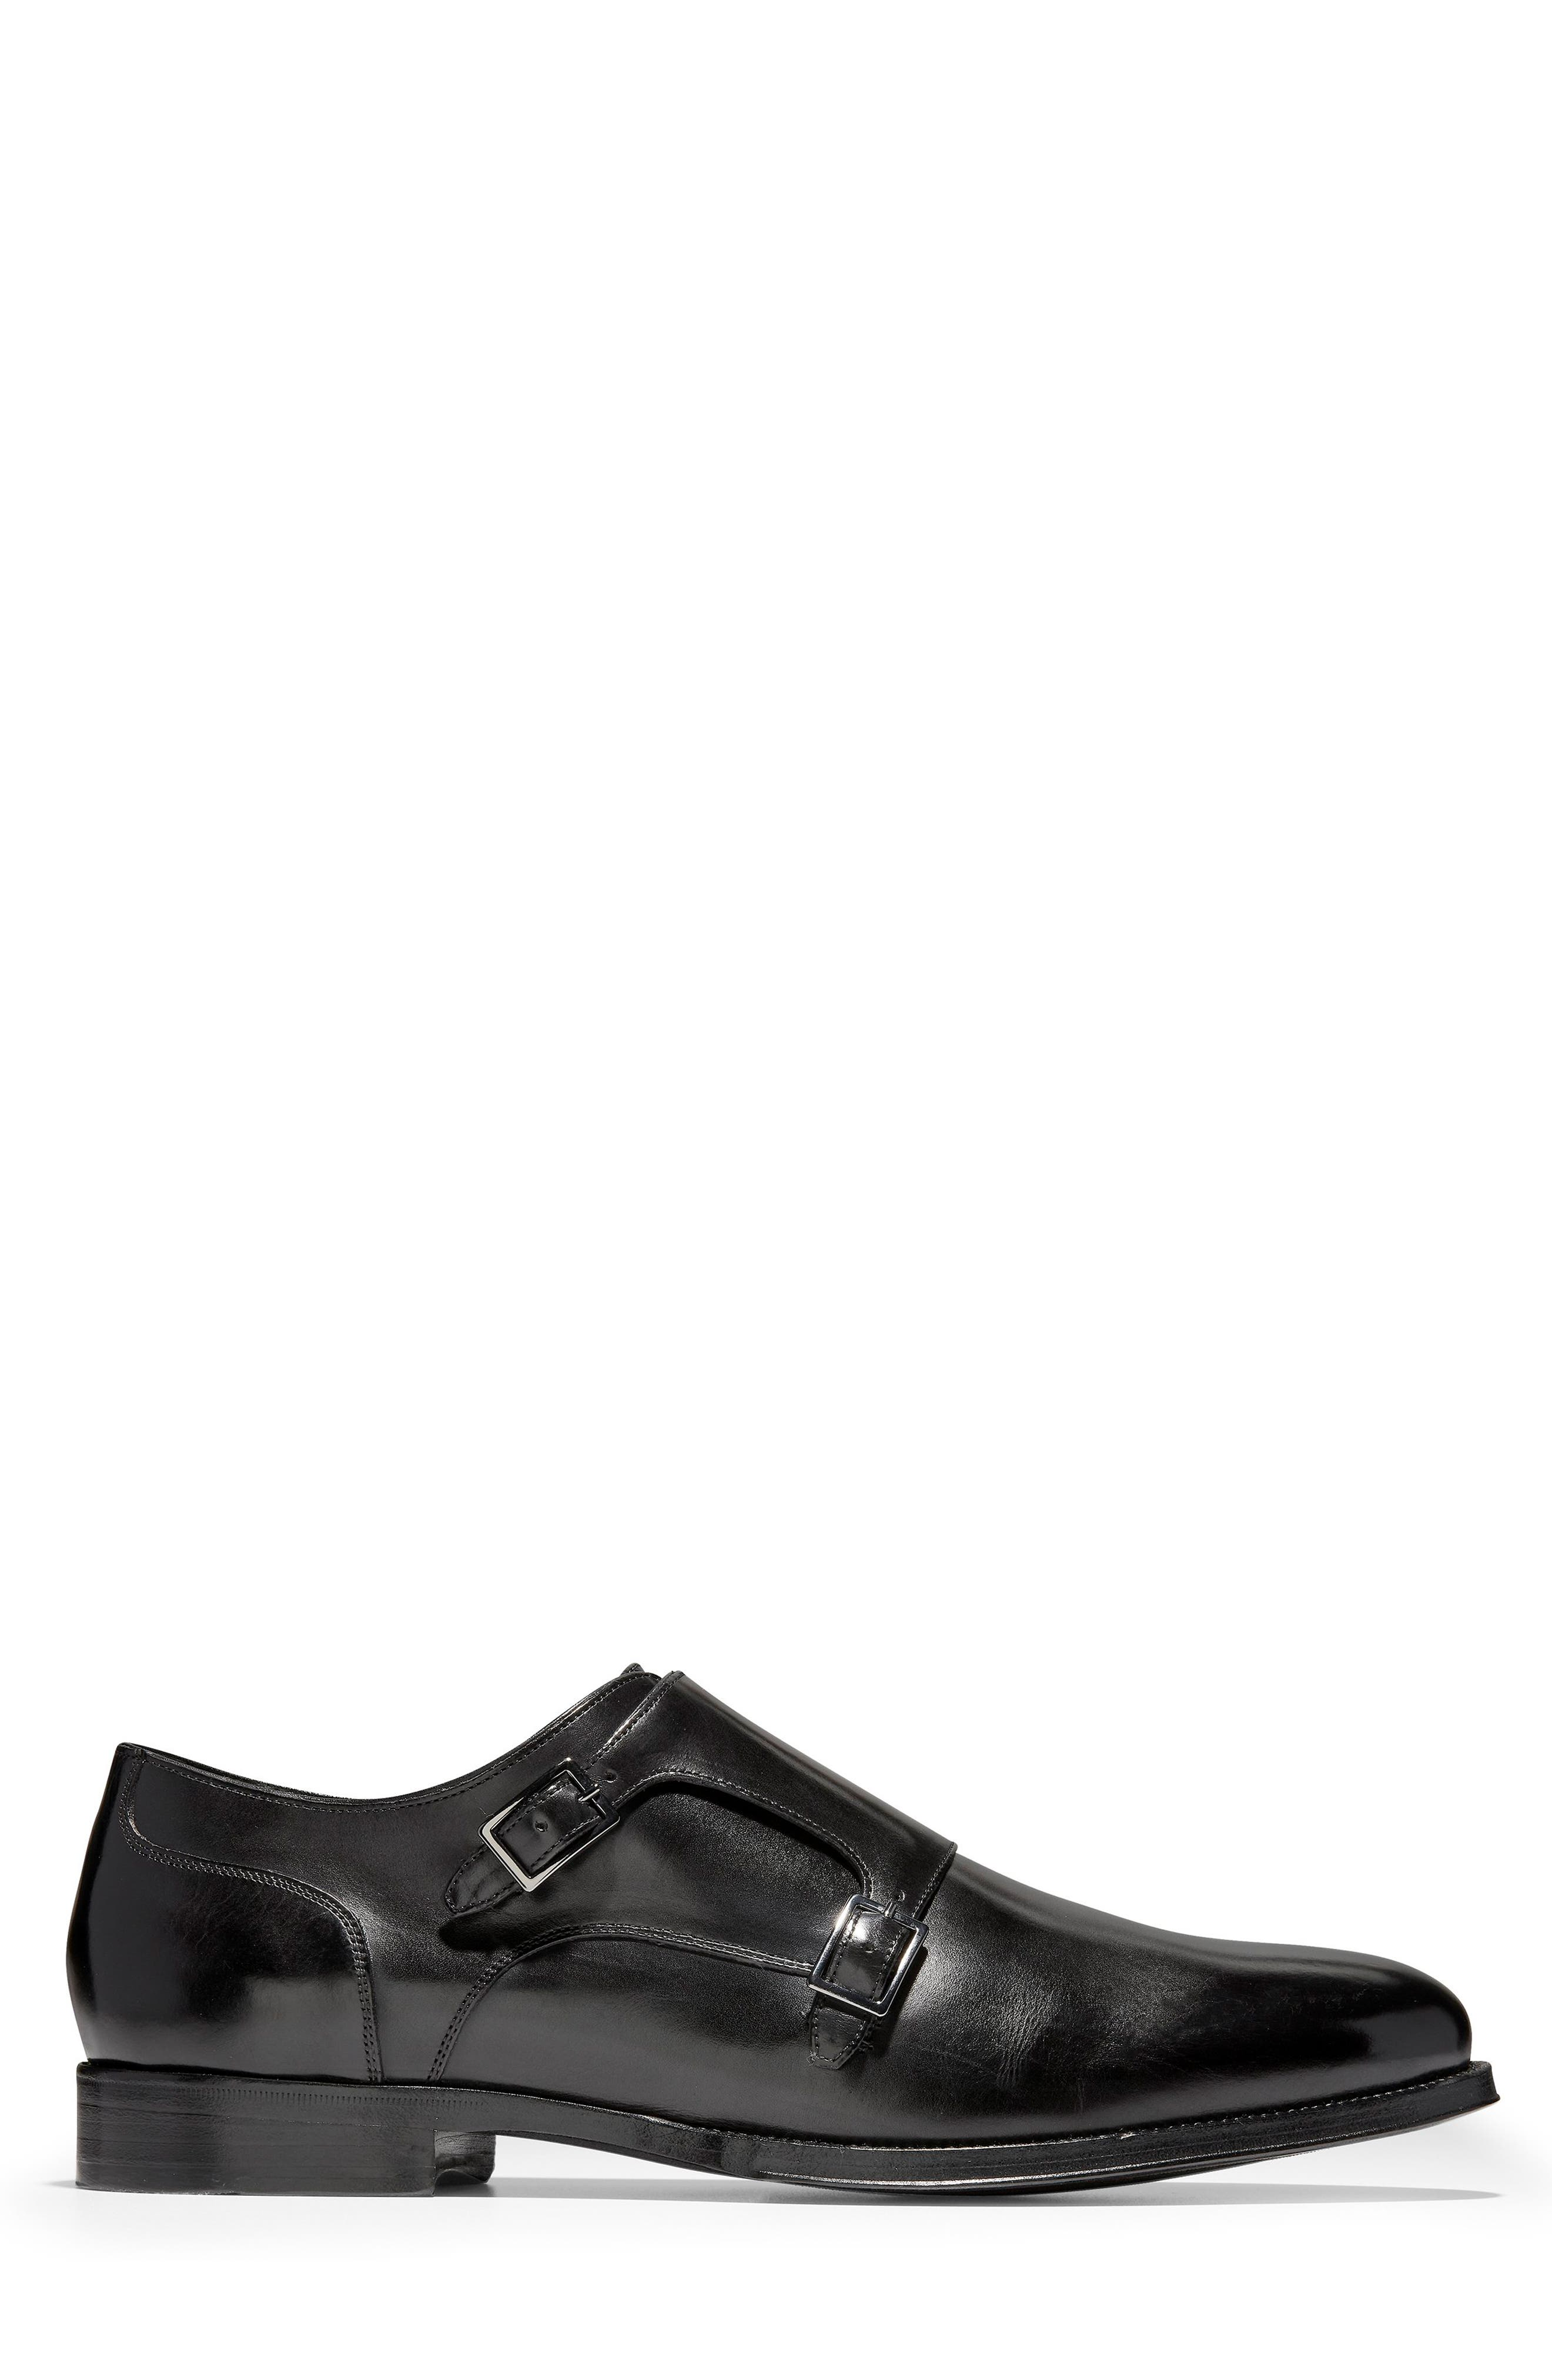 COLE HAAN, American Classics Gramercy Double Strap Monk Shoe, Alternate thumbnail 3, color, BLACK LEATHER